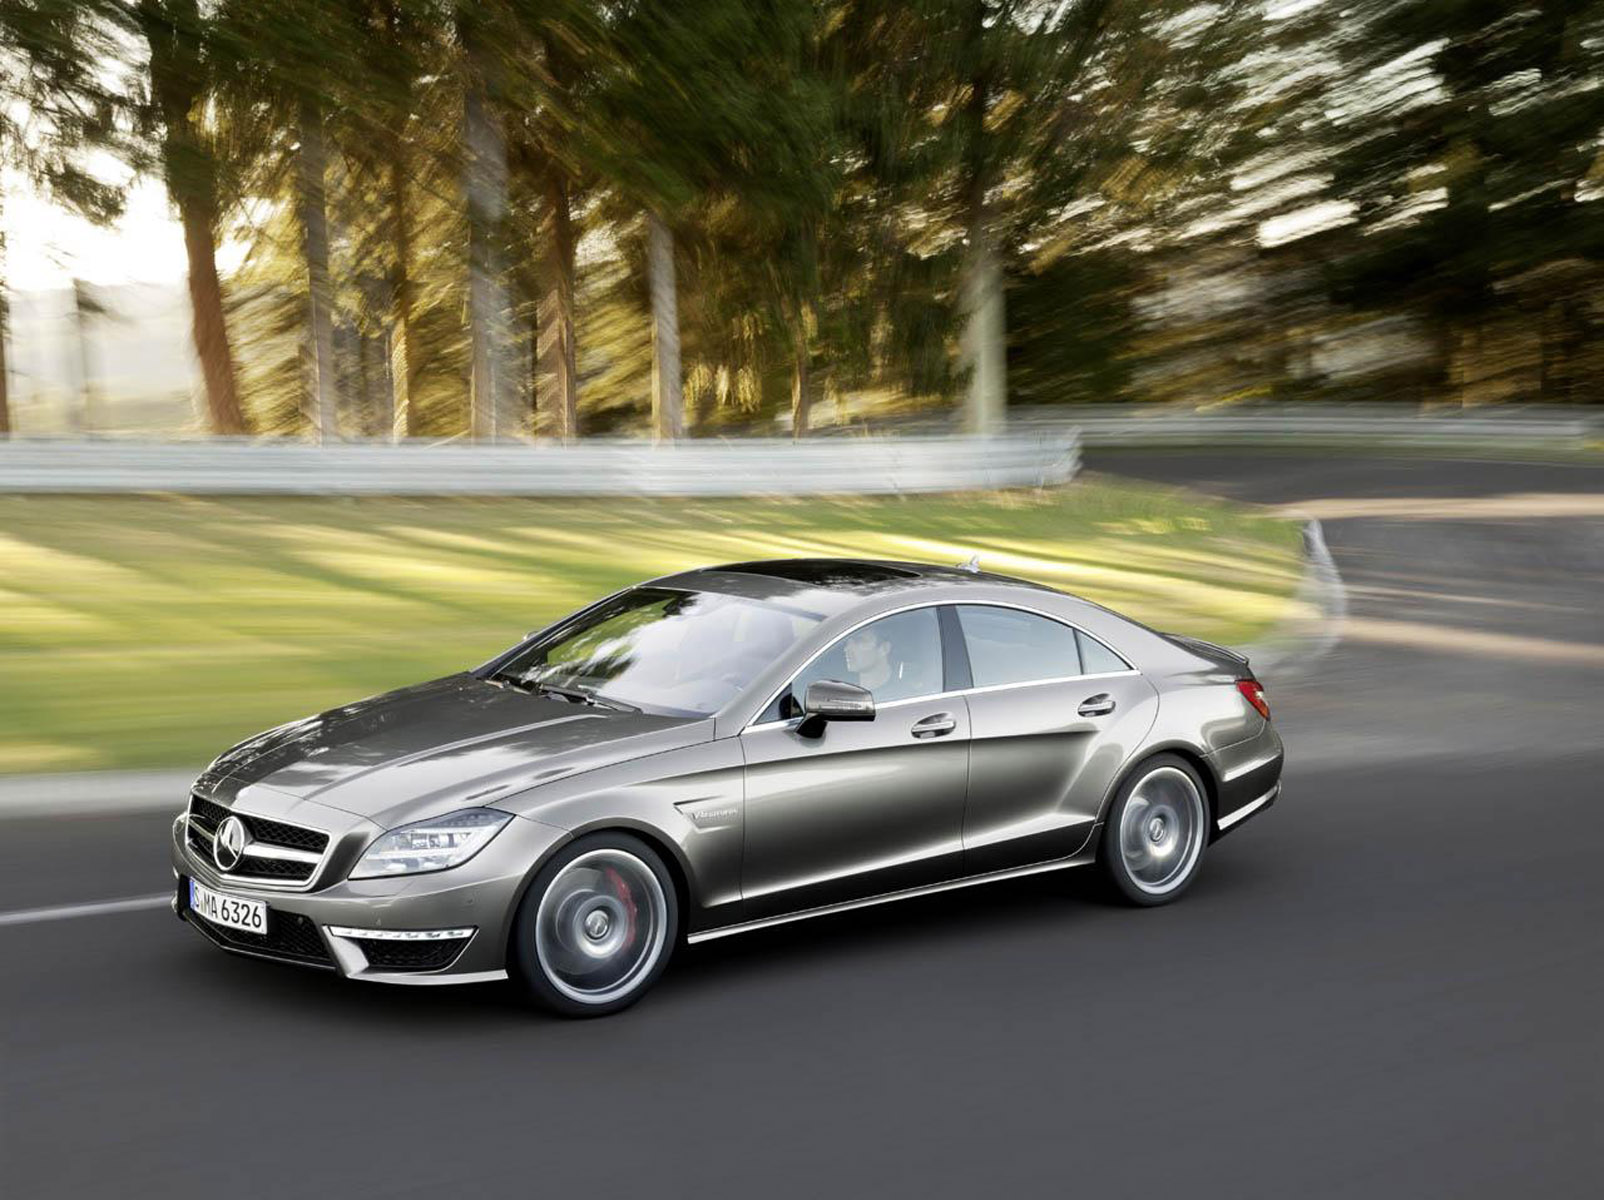 2012 mercedes cls us price 71 300 usd for Mercedes benz cls 2012 price